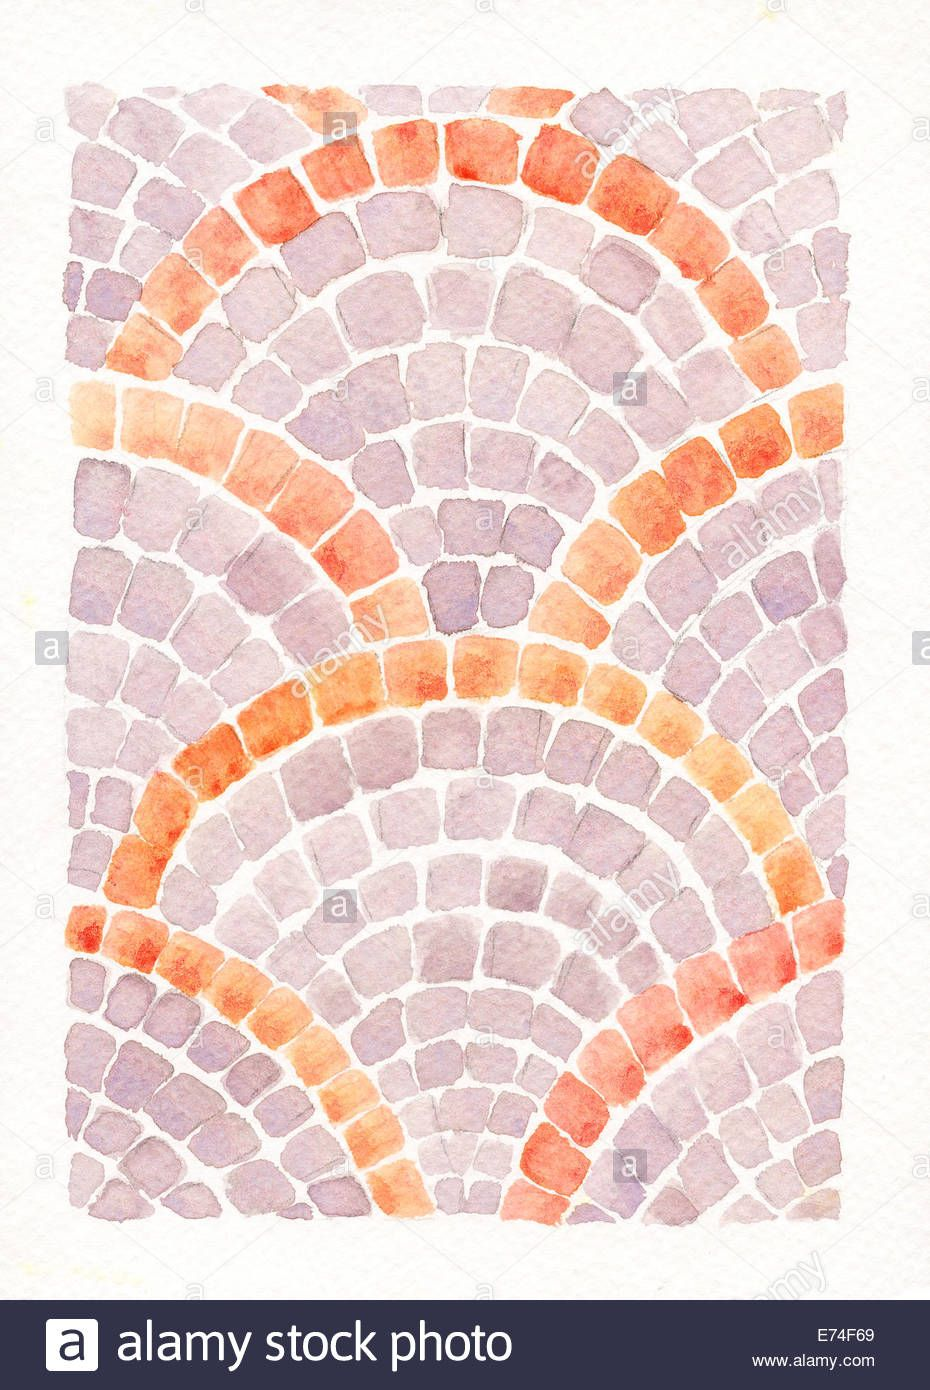 Image result for how to do a mosaic watercolor painting